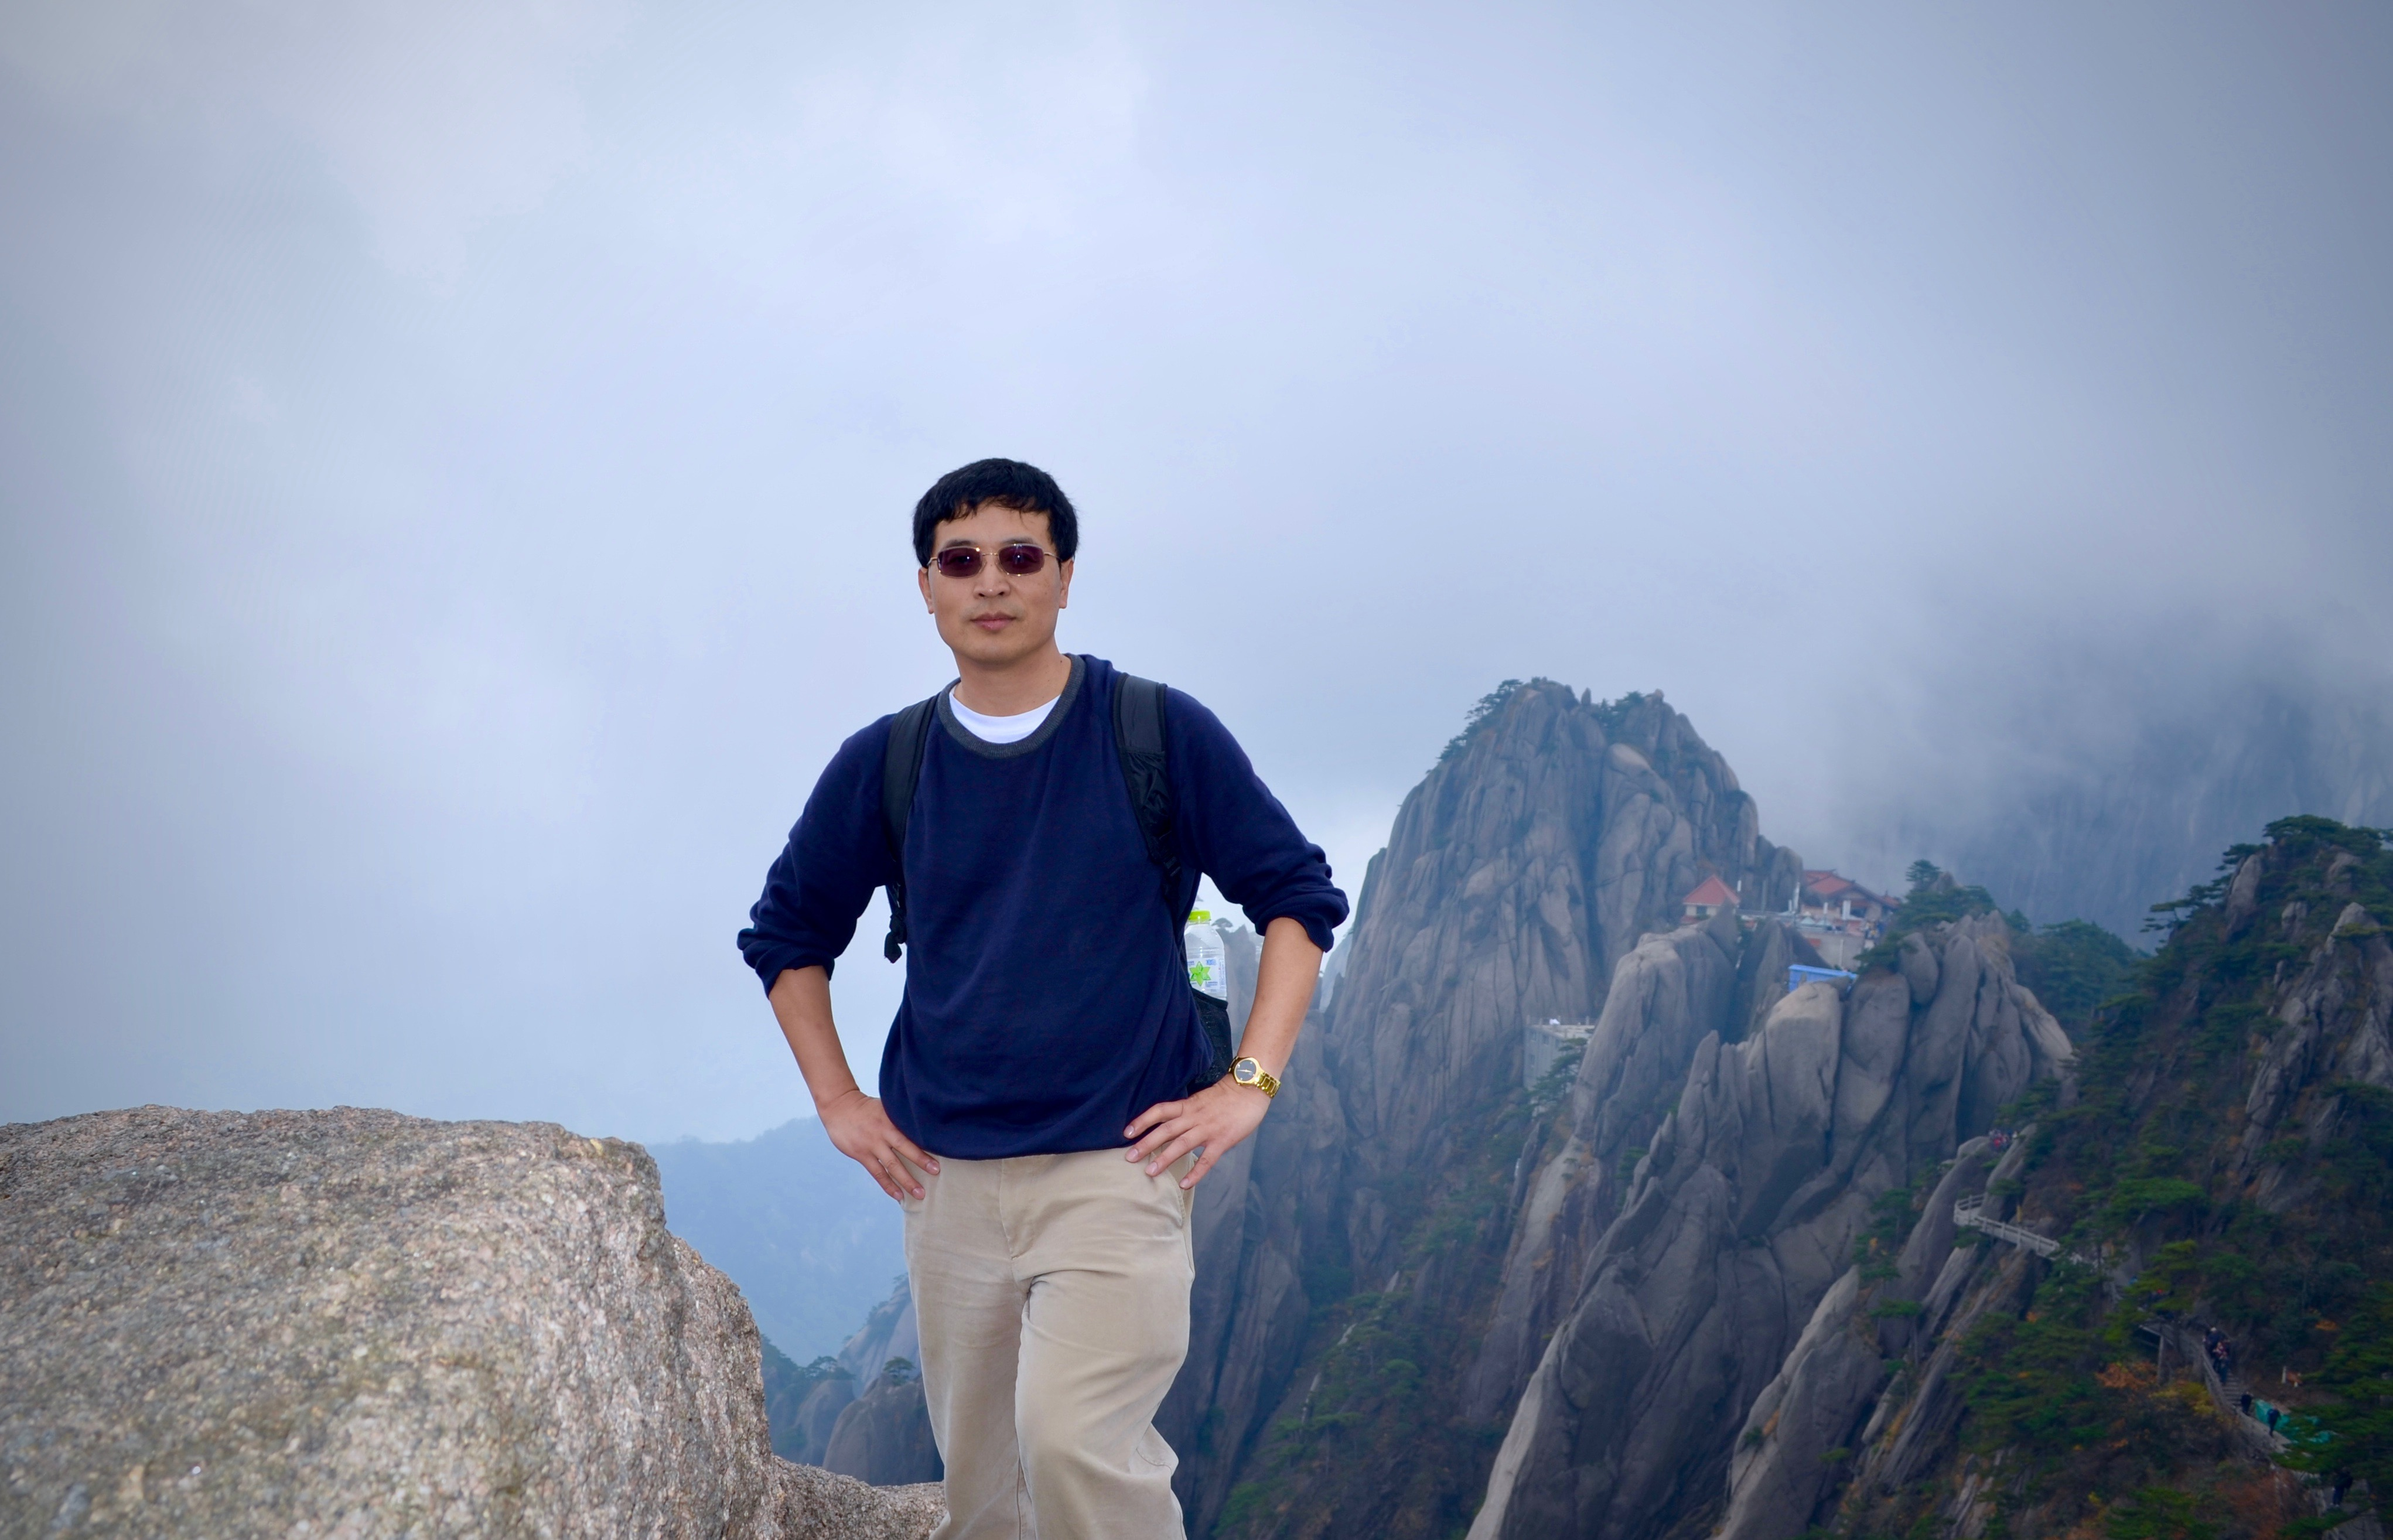 Shaocheng Xie, ARM's value-added products and translators lead, poses during a trek up Mount Huangshan in his native China.